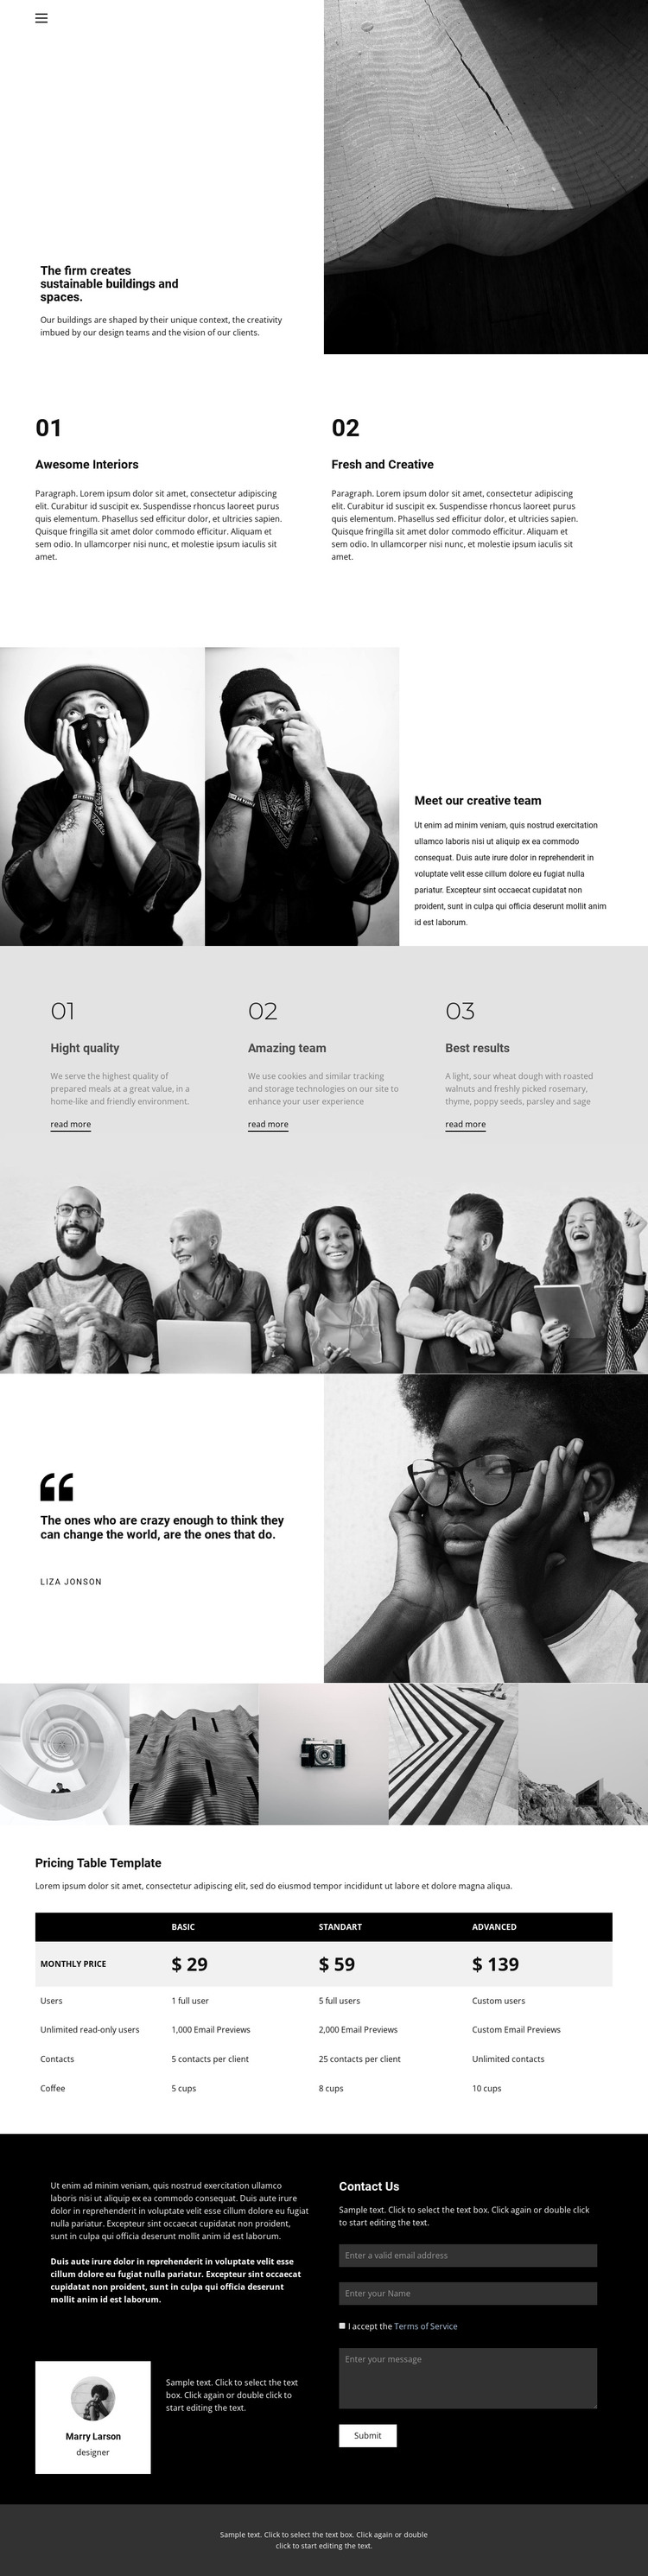 We creates sustainable buildings HTML Template